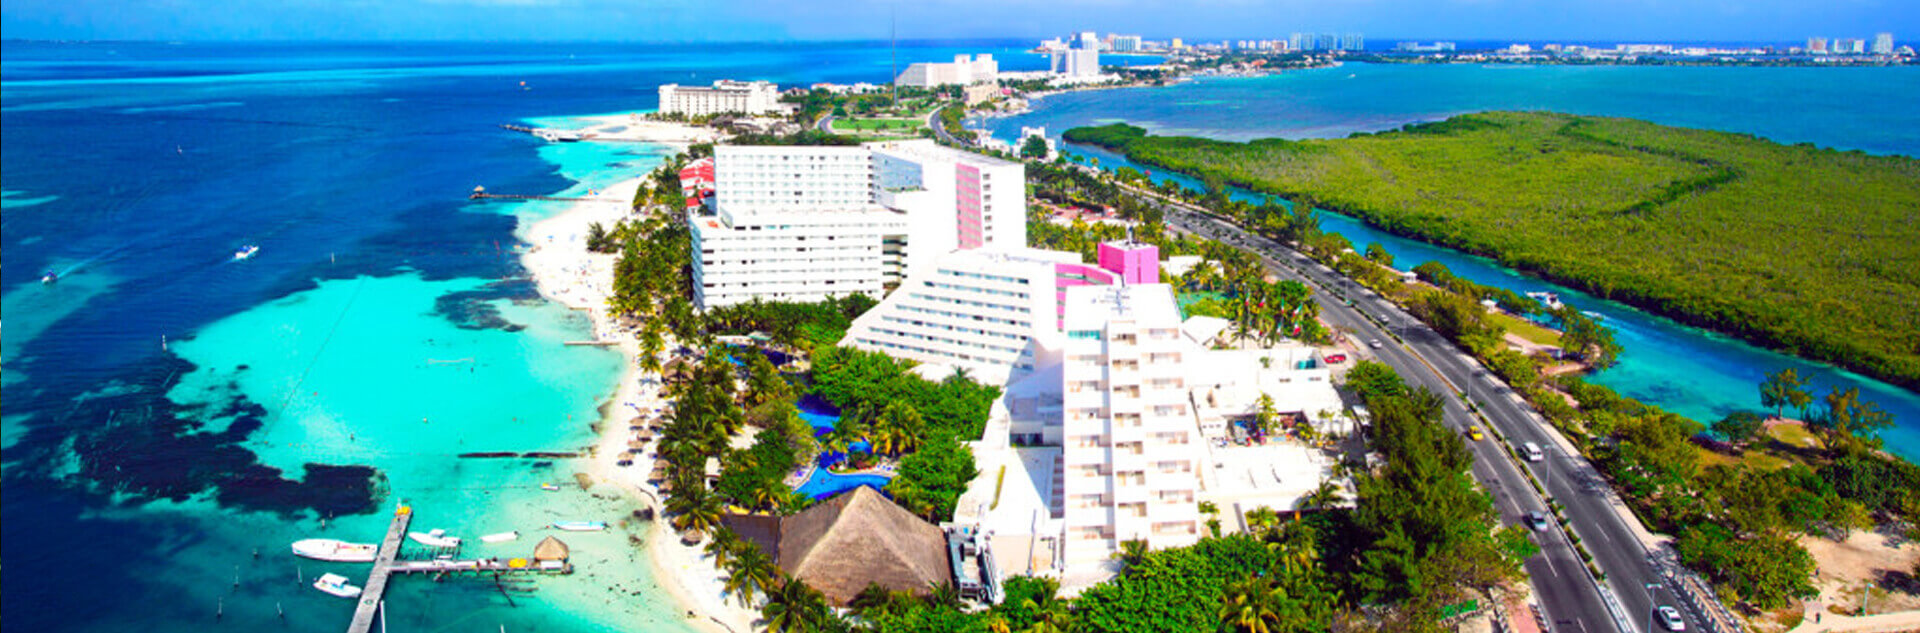 Cancun Airport Transportation To Hotel Zone